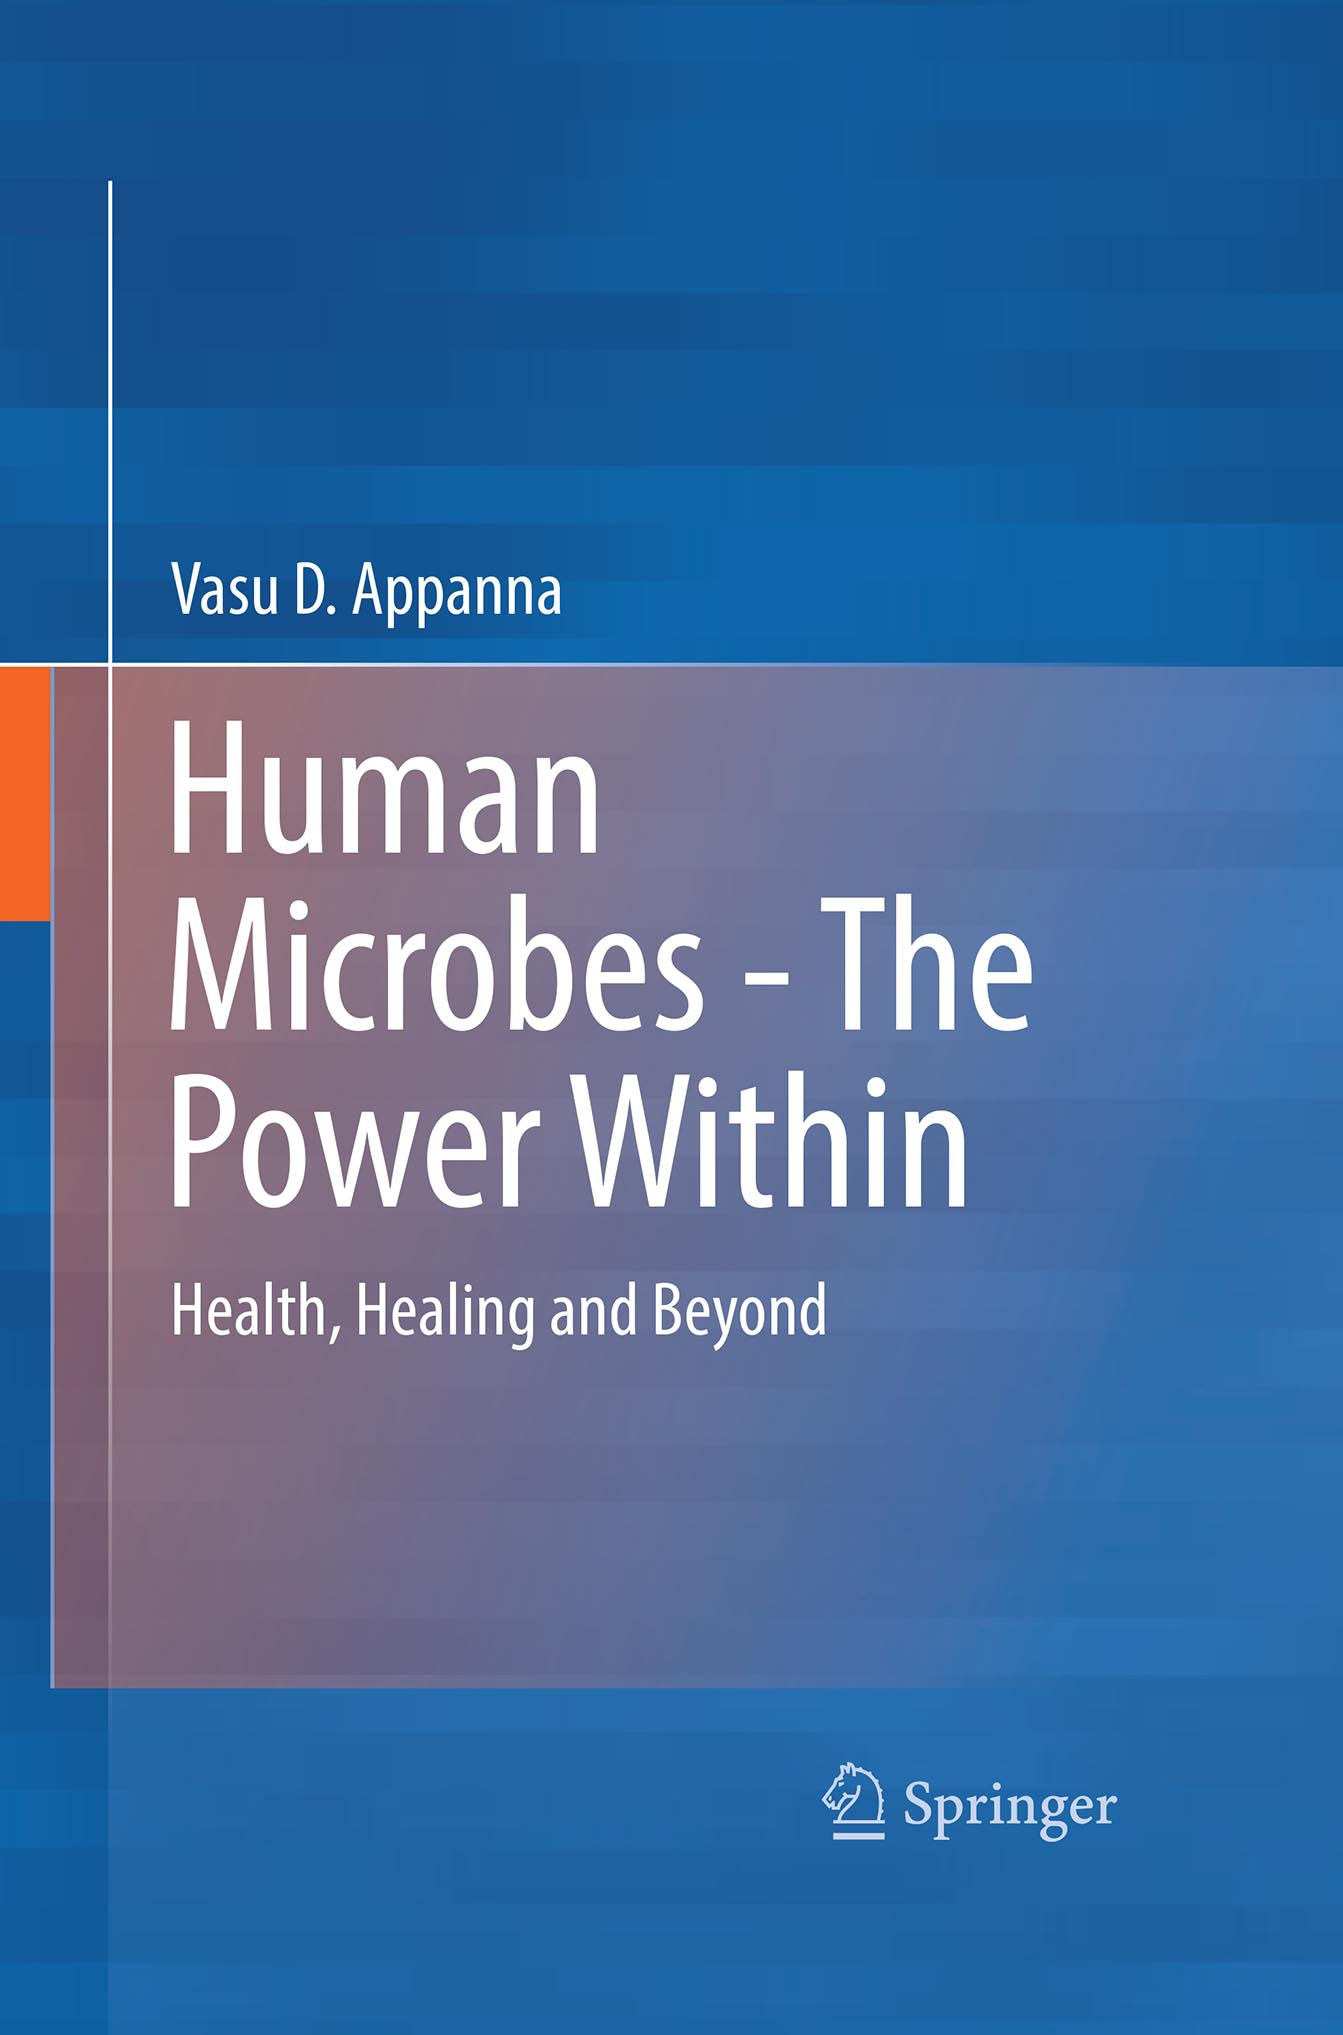 Appanna, Vasu D. - Human Microbes - The Power Within, ebook